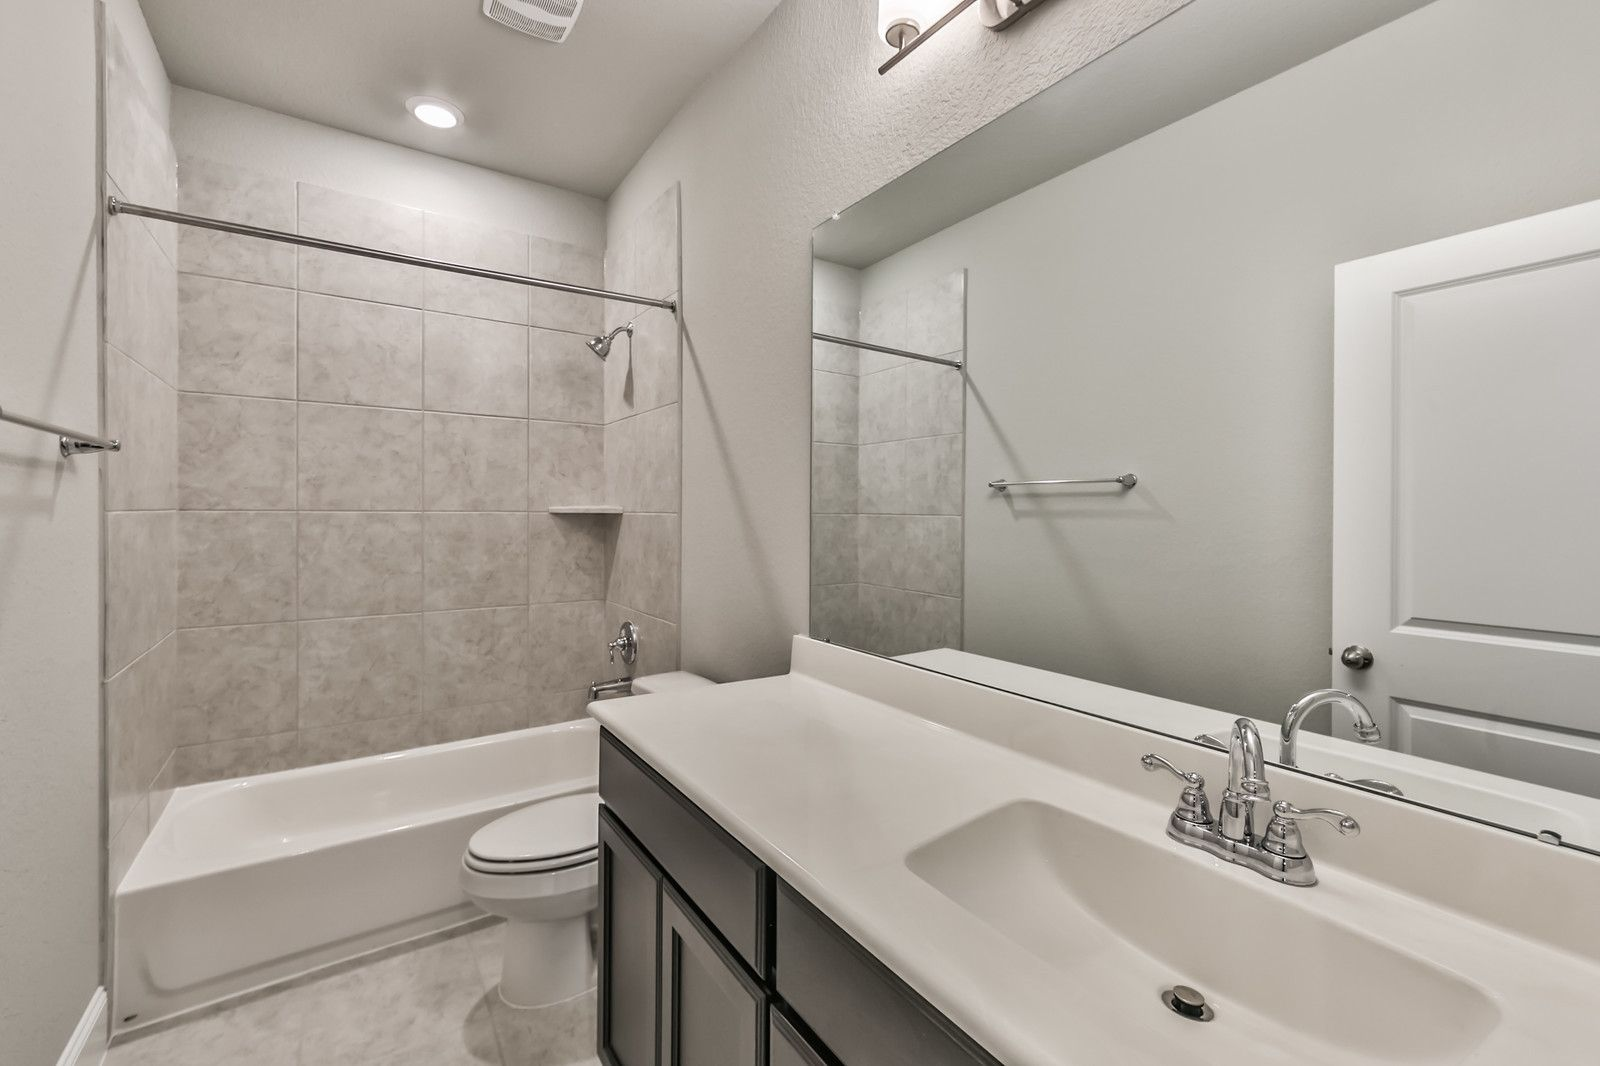 Bathroom featured in the Plan 4029 By Shea Homes in Houston, TX